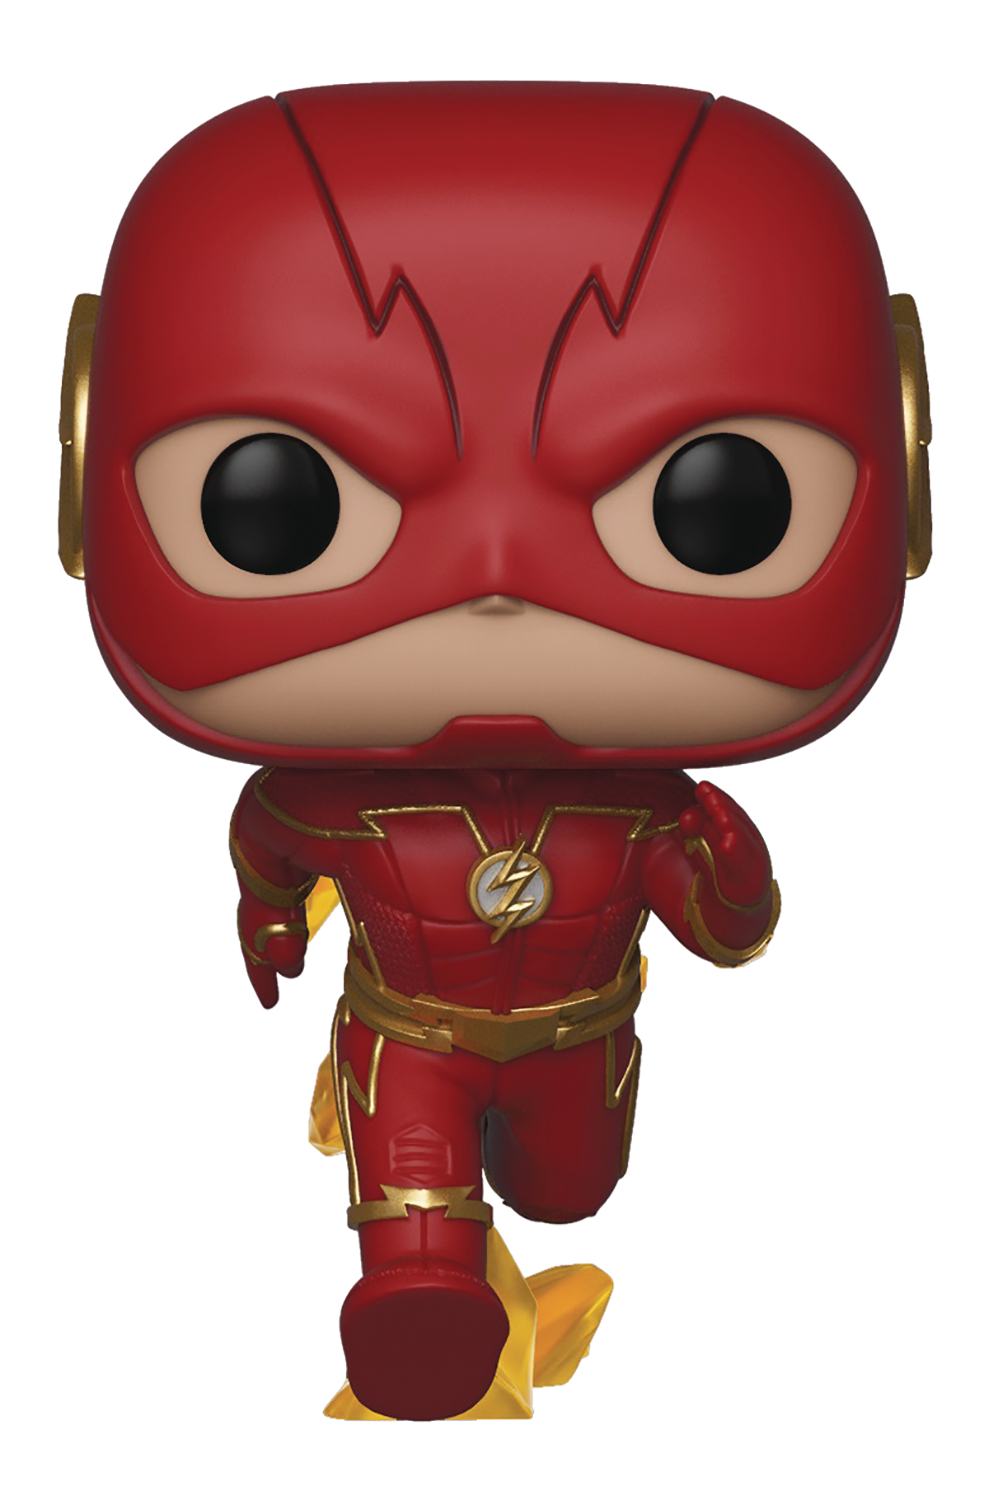 POP TV FLASH VINYL FIG